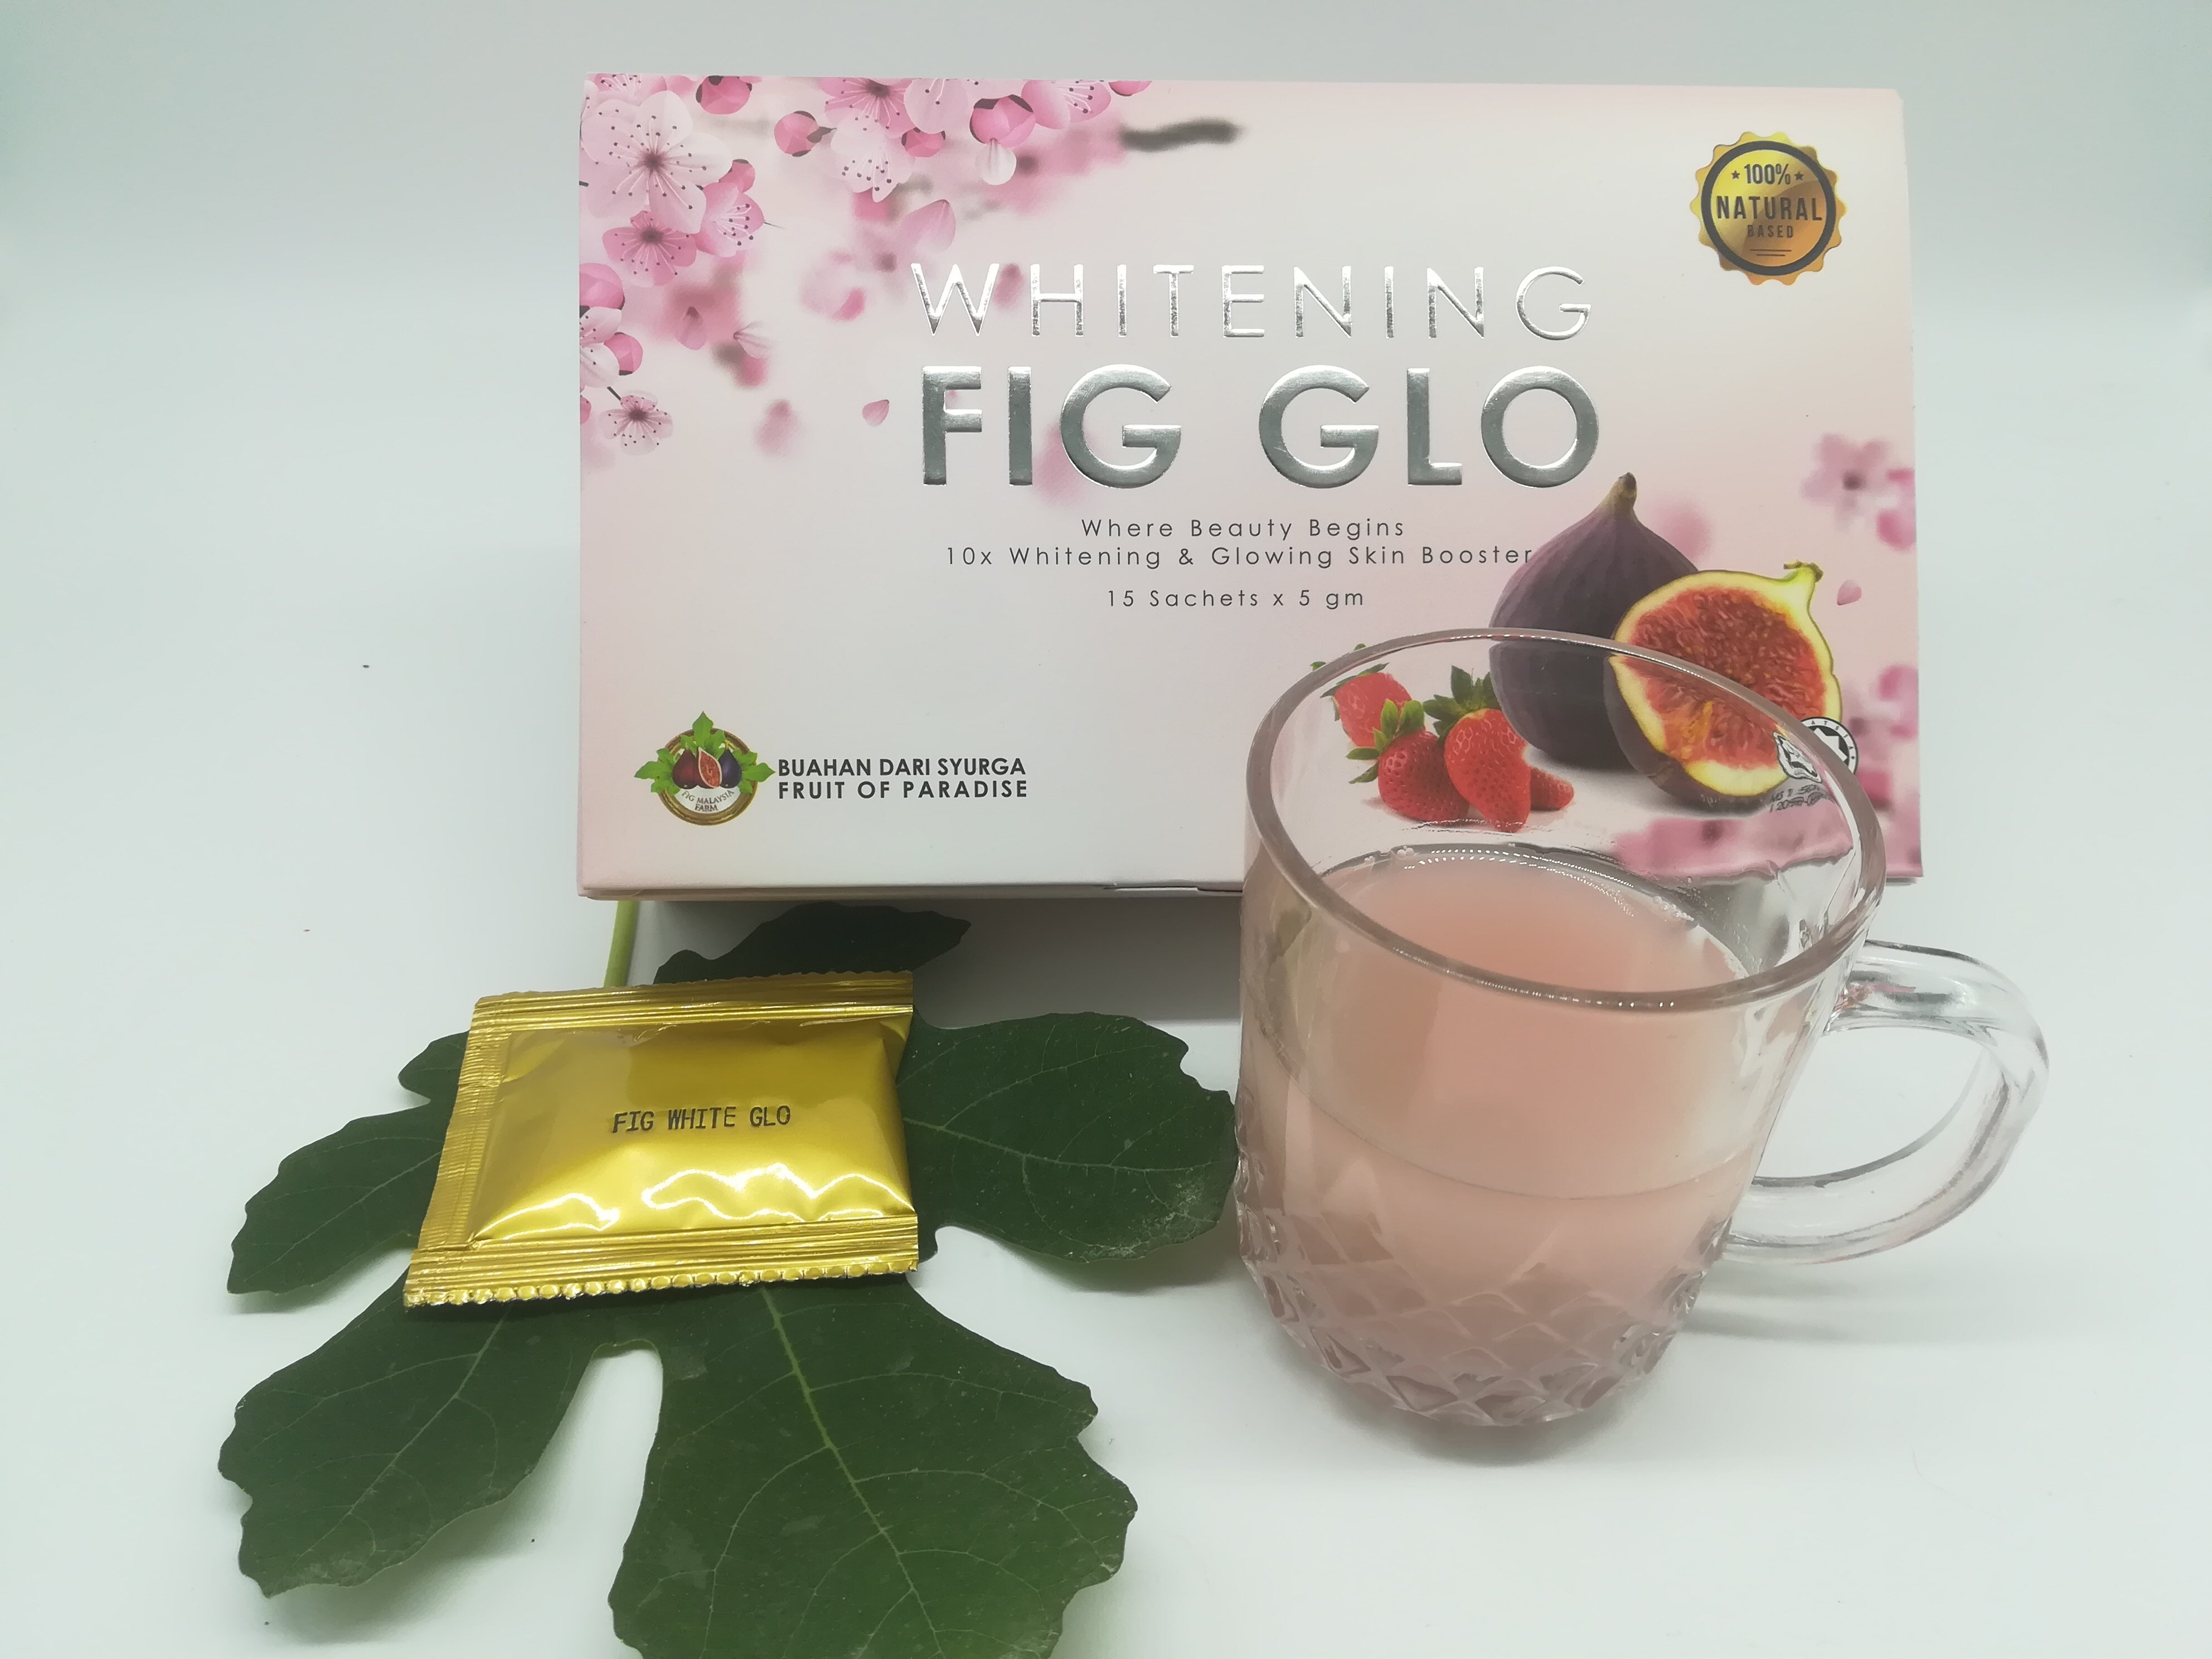 Bio  Fig Glowing & Whitening Skin Booster 15 sachets